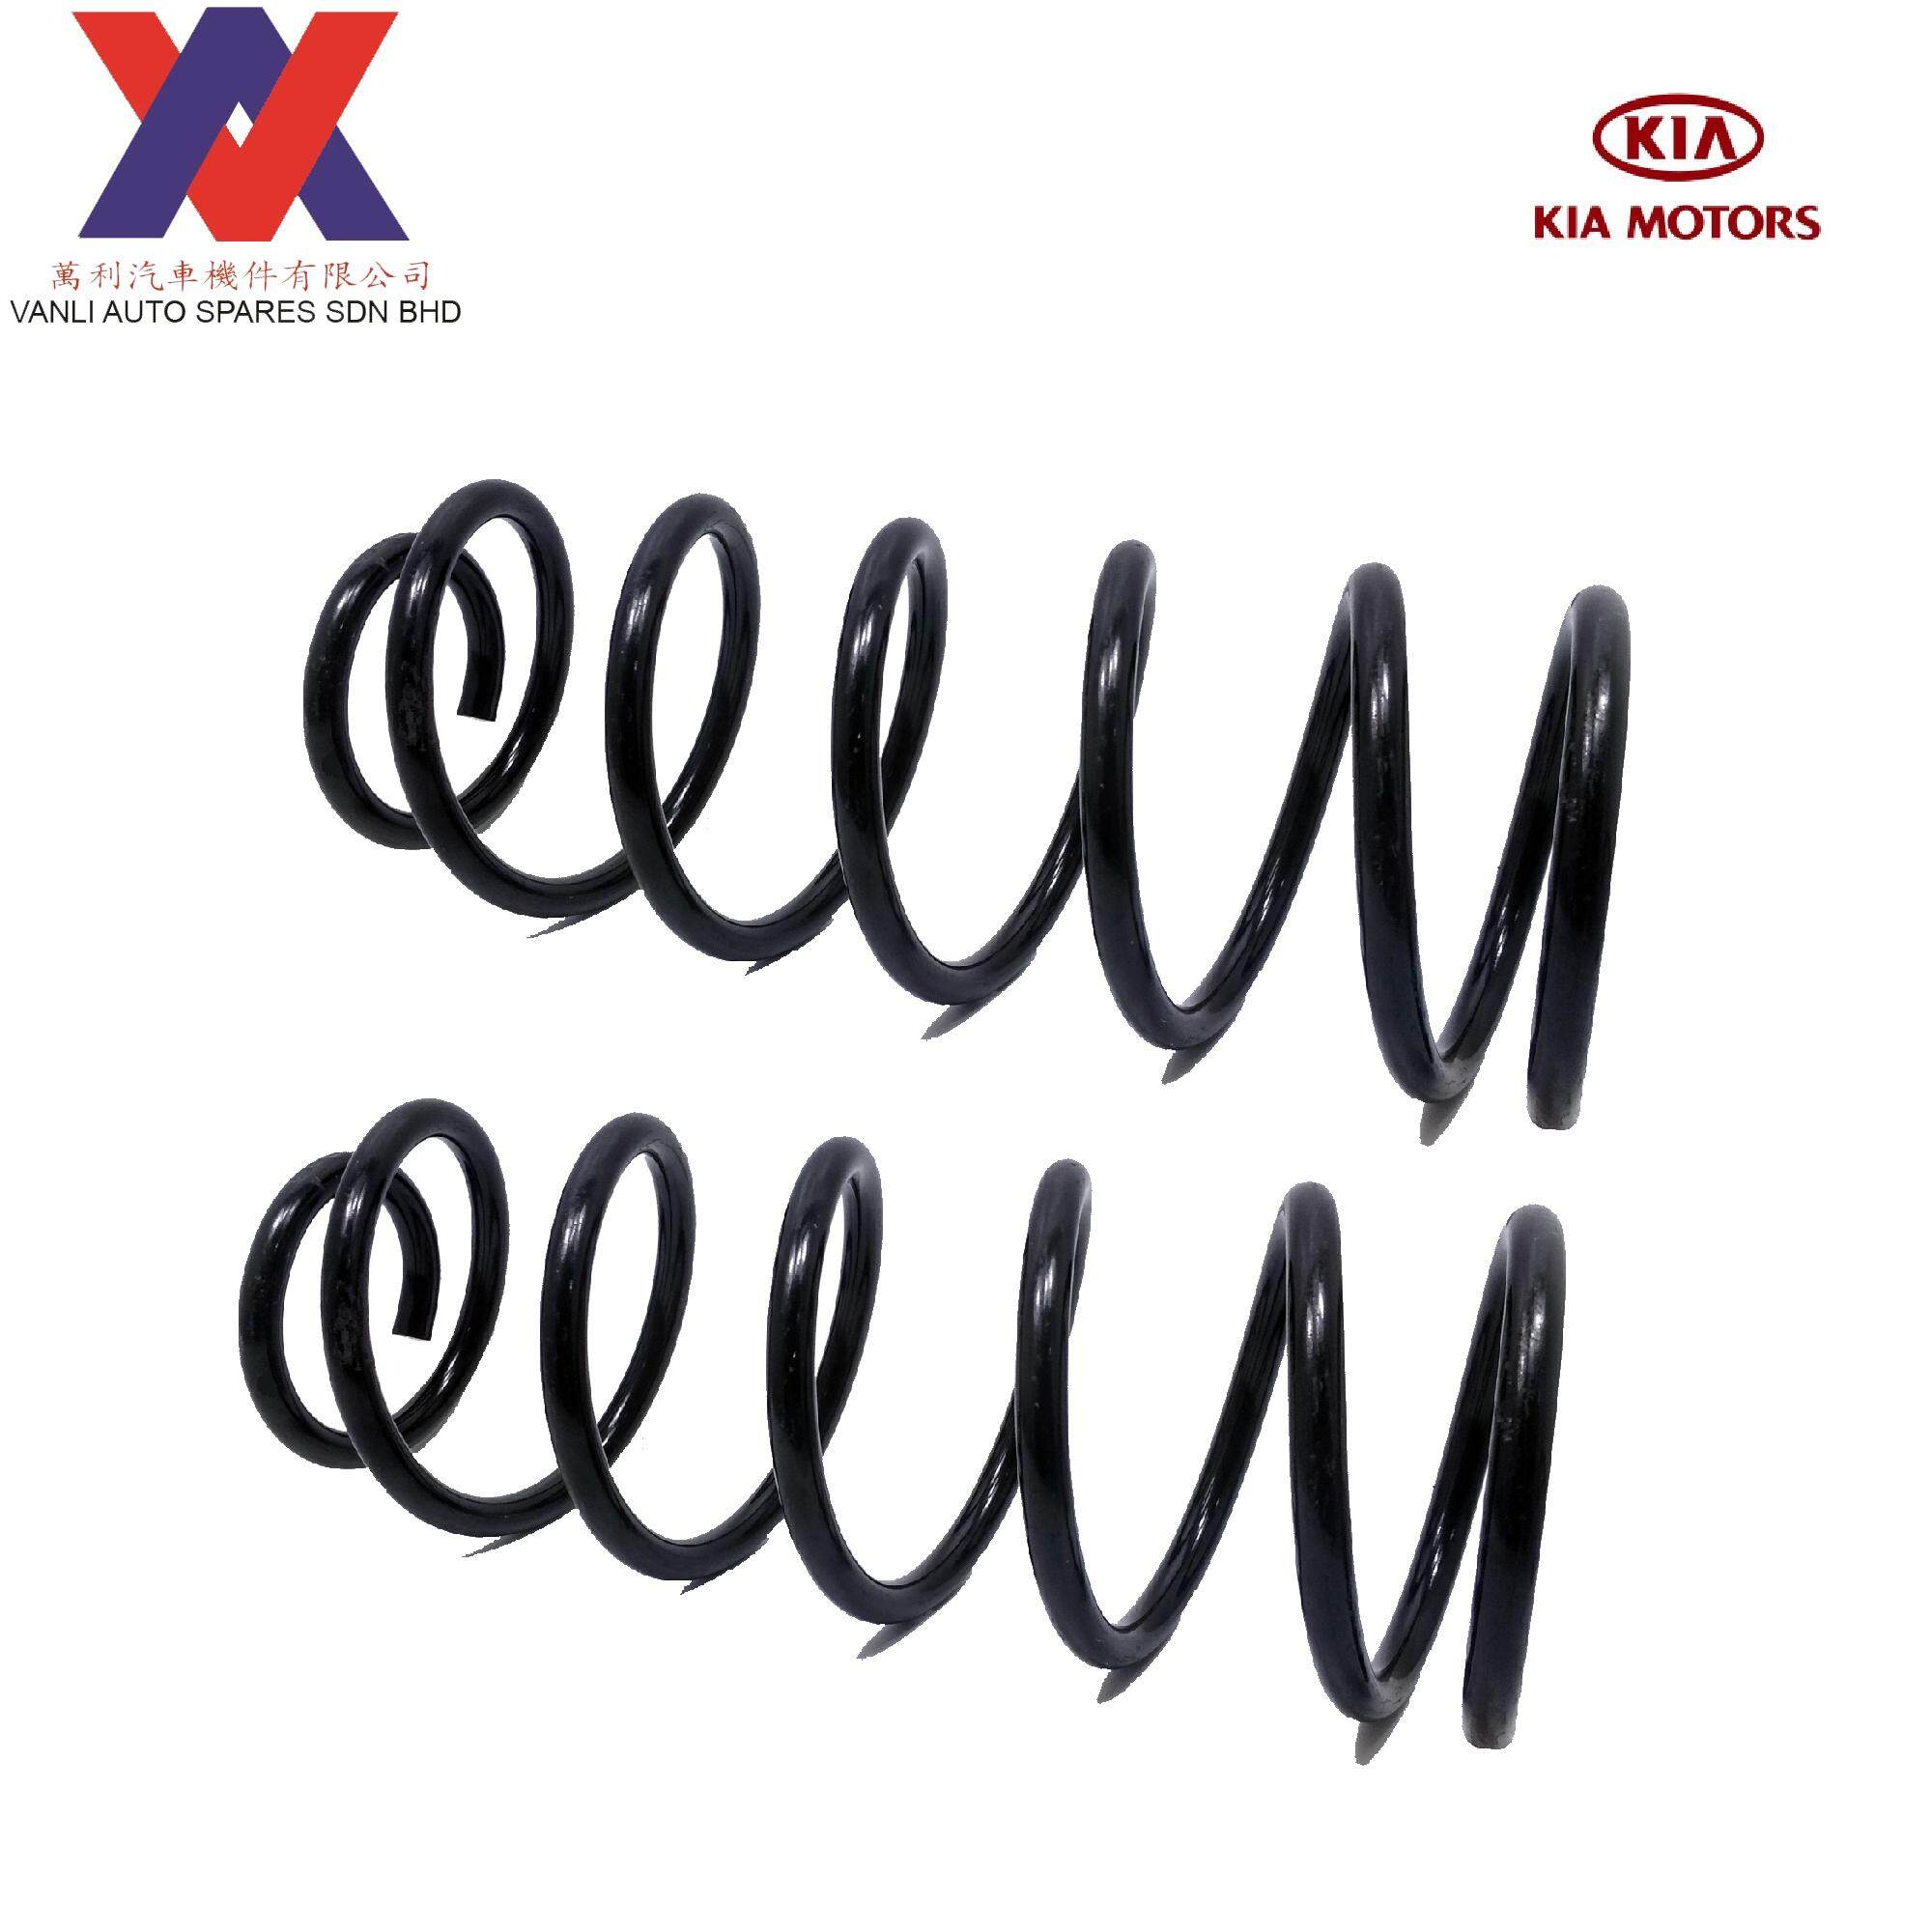 hight resolution of kia auto parts u0026 spares price in malaysia best kia auto partsrear coil spring for